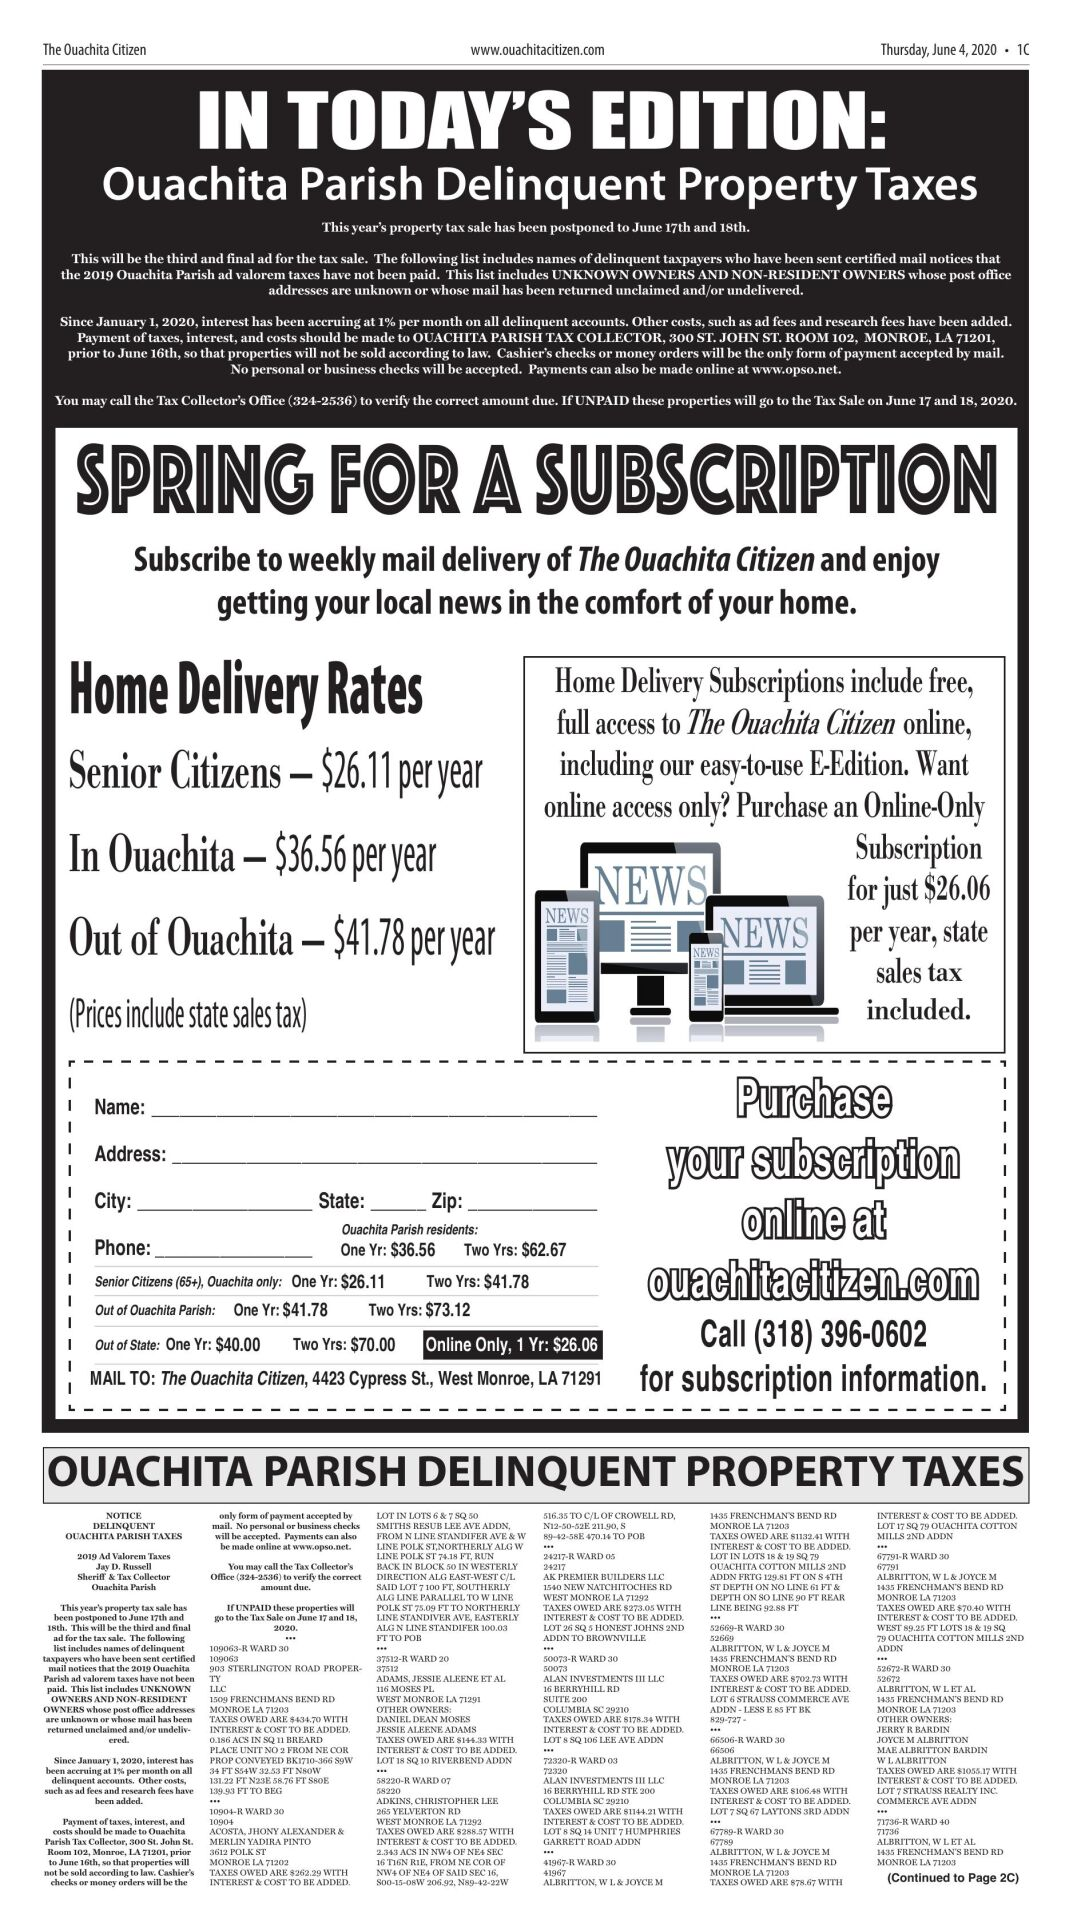 June 4, 2020 Ouachita Parish Delinquent Tax Notices, click to download pages